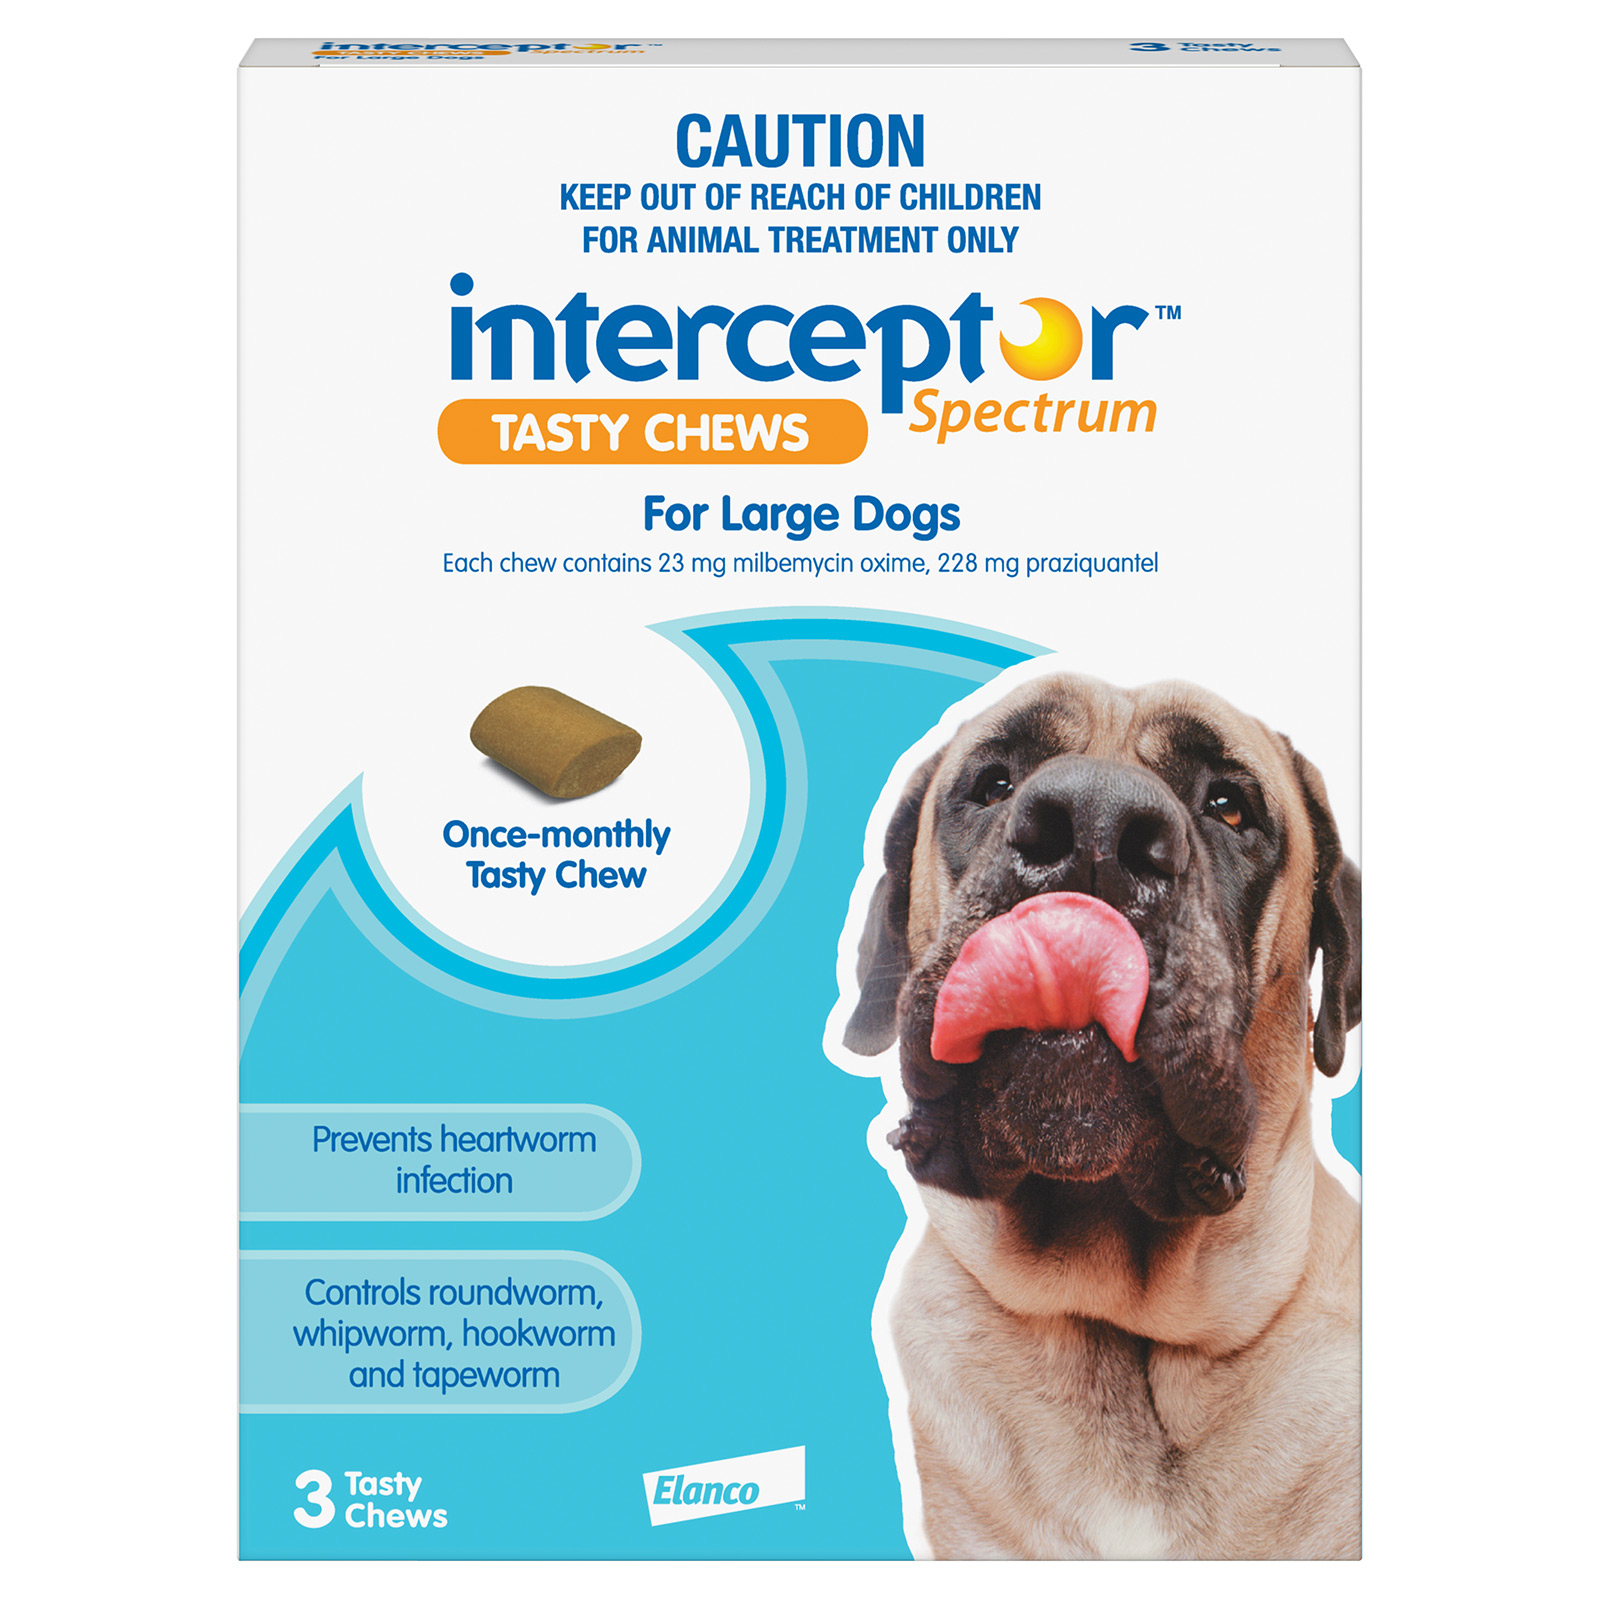 Interceptor Spectrum Tasty Chews For Large Dogs 22 To 45Kg (Blue)